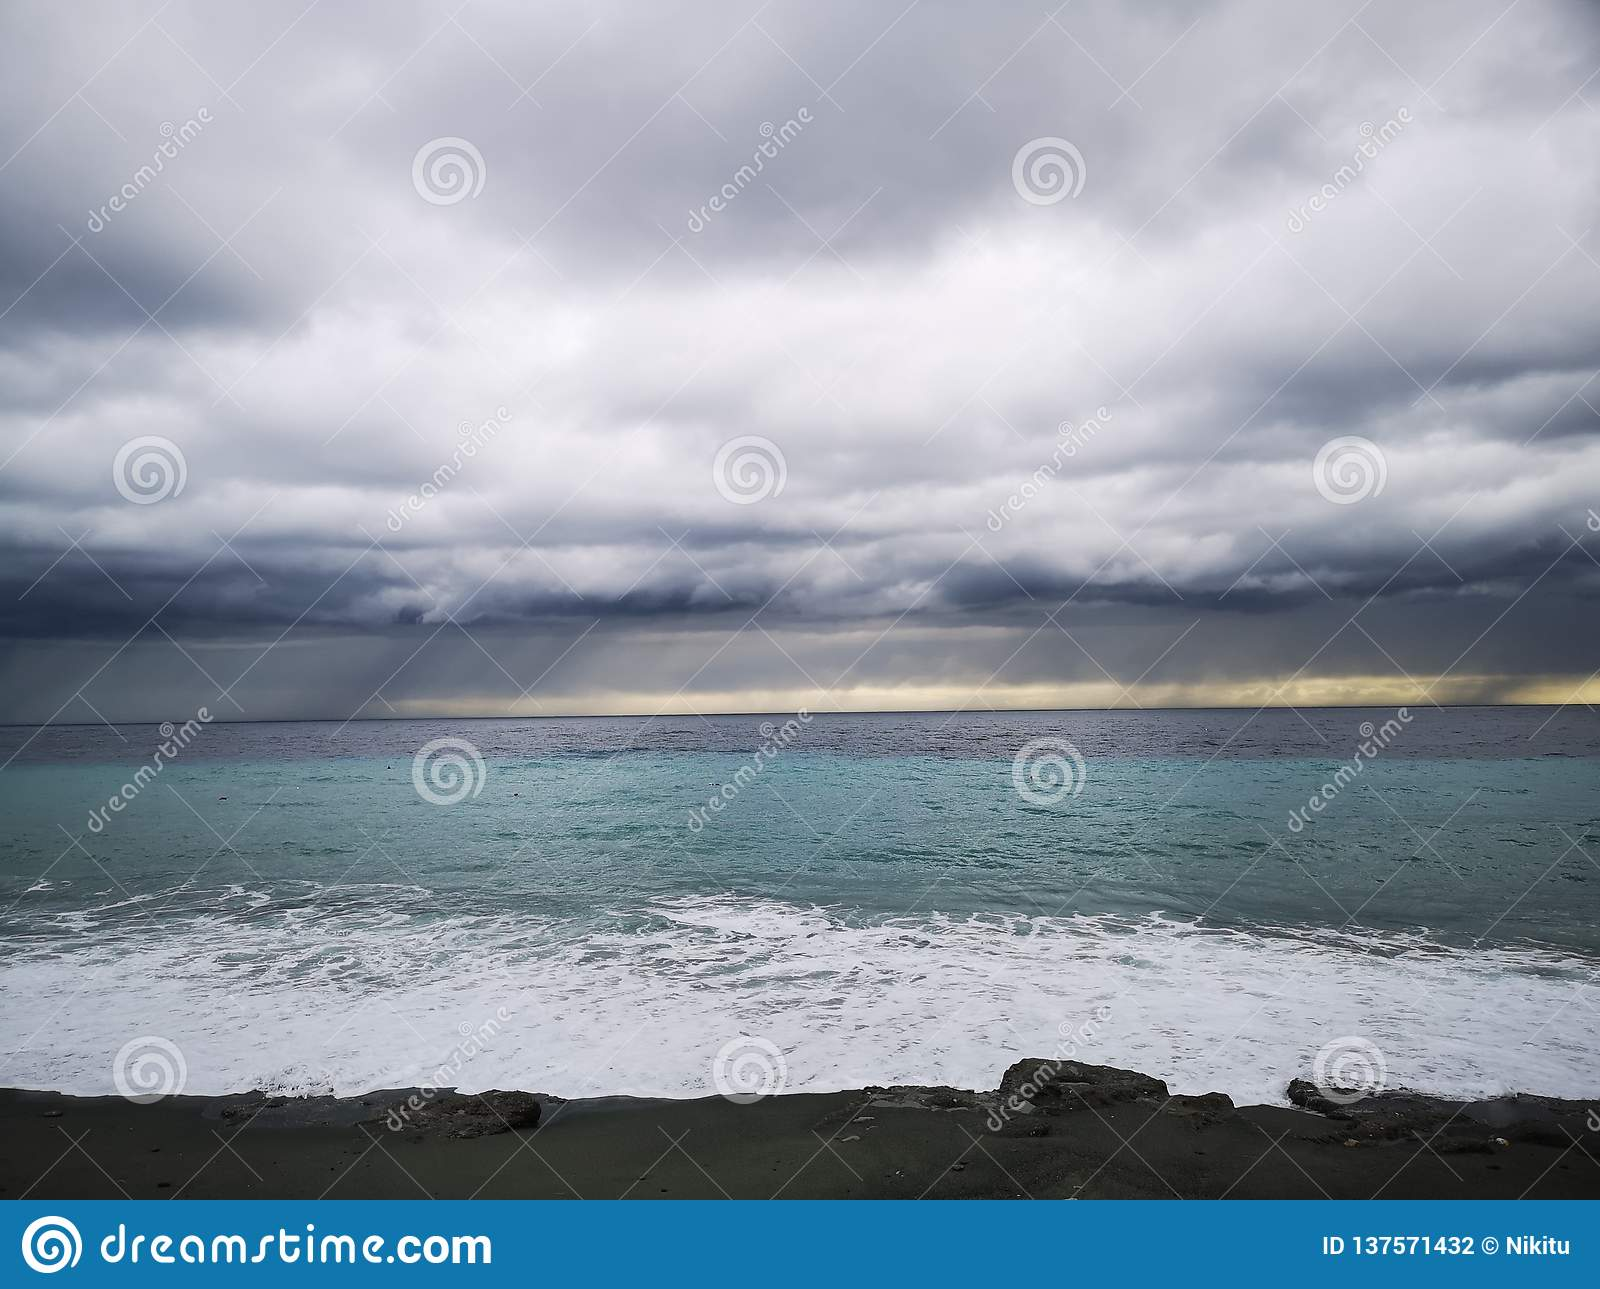 Crashing waves on beach with storm clouds